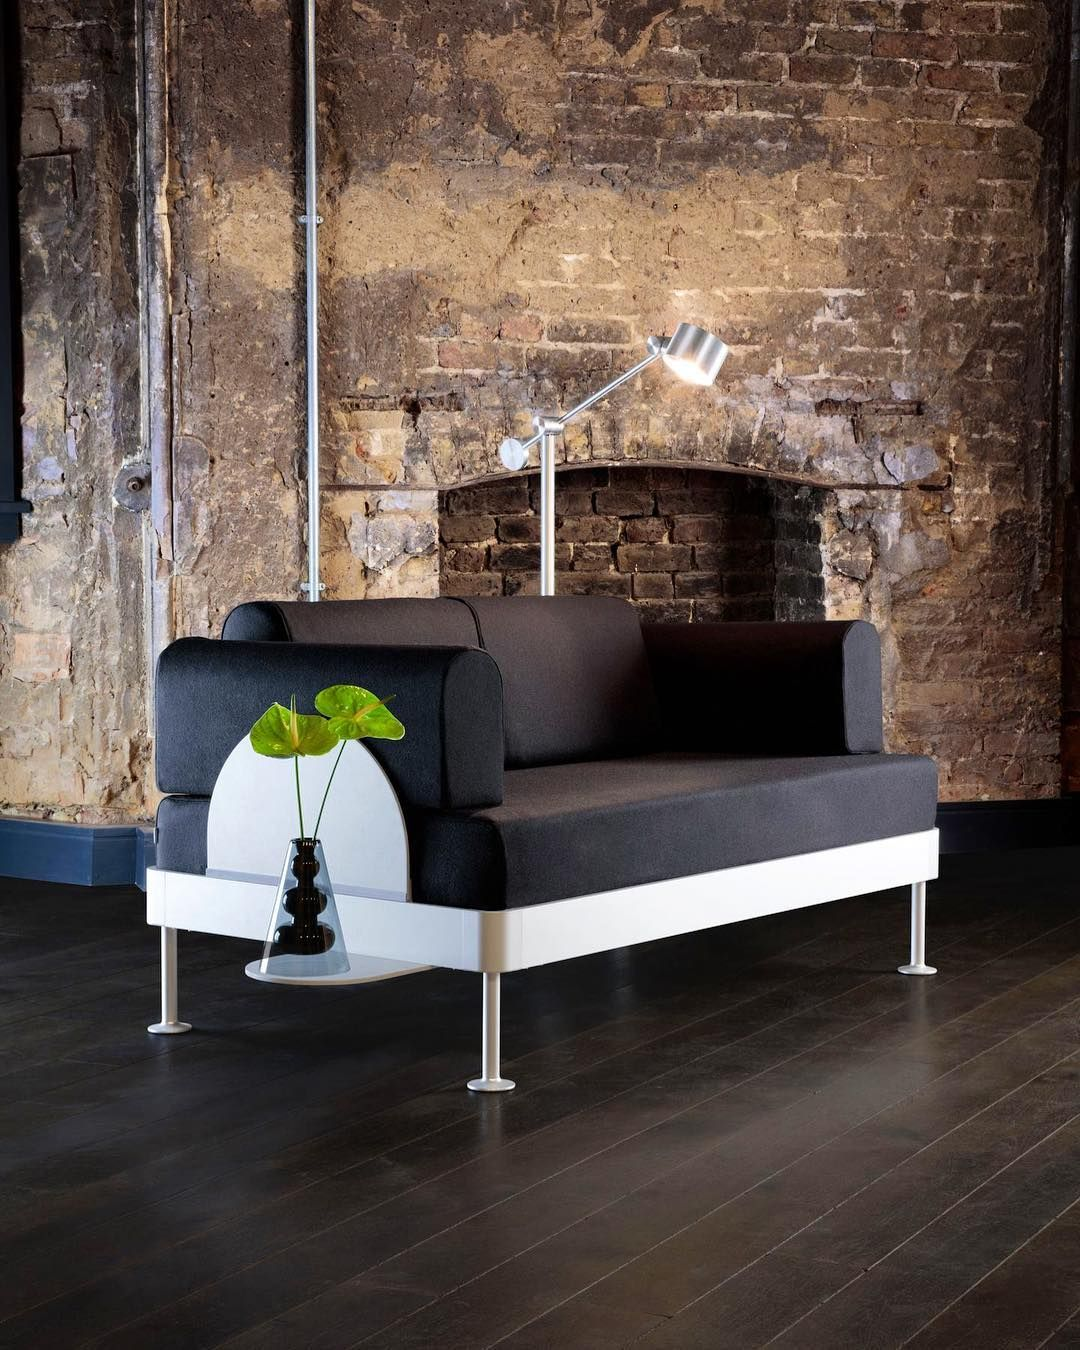 Tom Dixon Studio Tomdixonstudio Fwtografies Kai Binteo Sto Instagram Ikea Sofa Ikea Bed Shelves In Bedroom